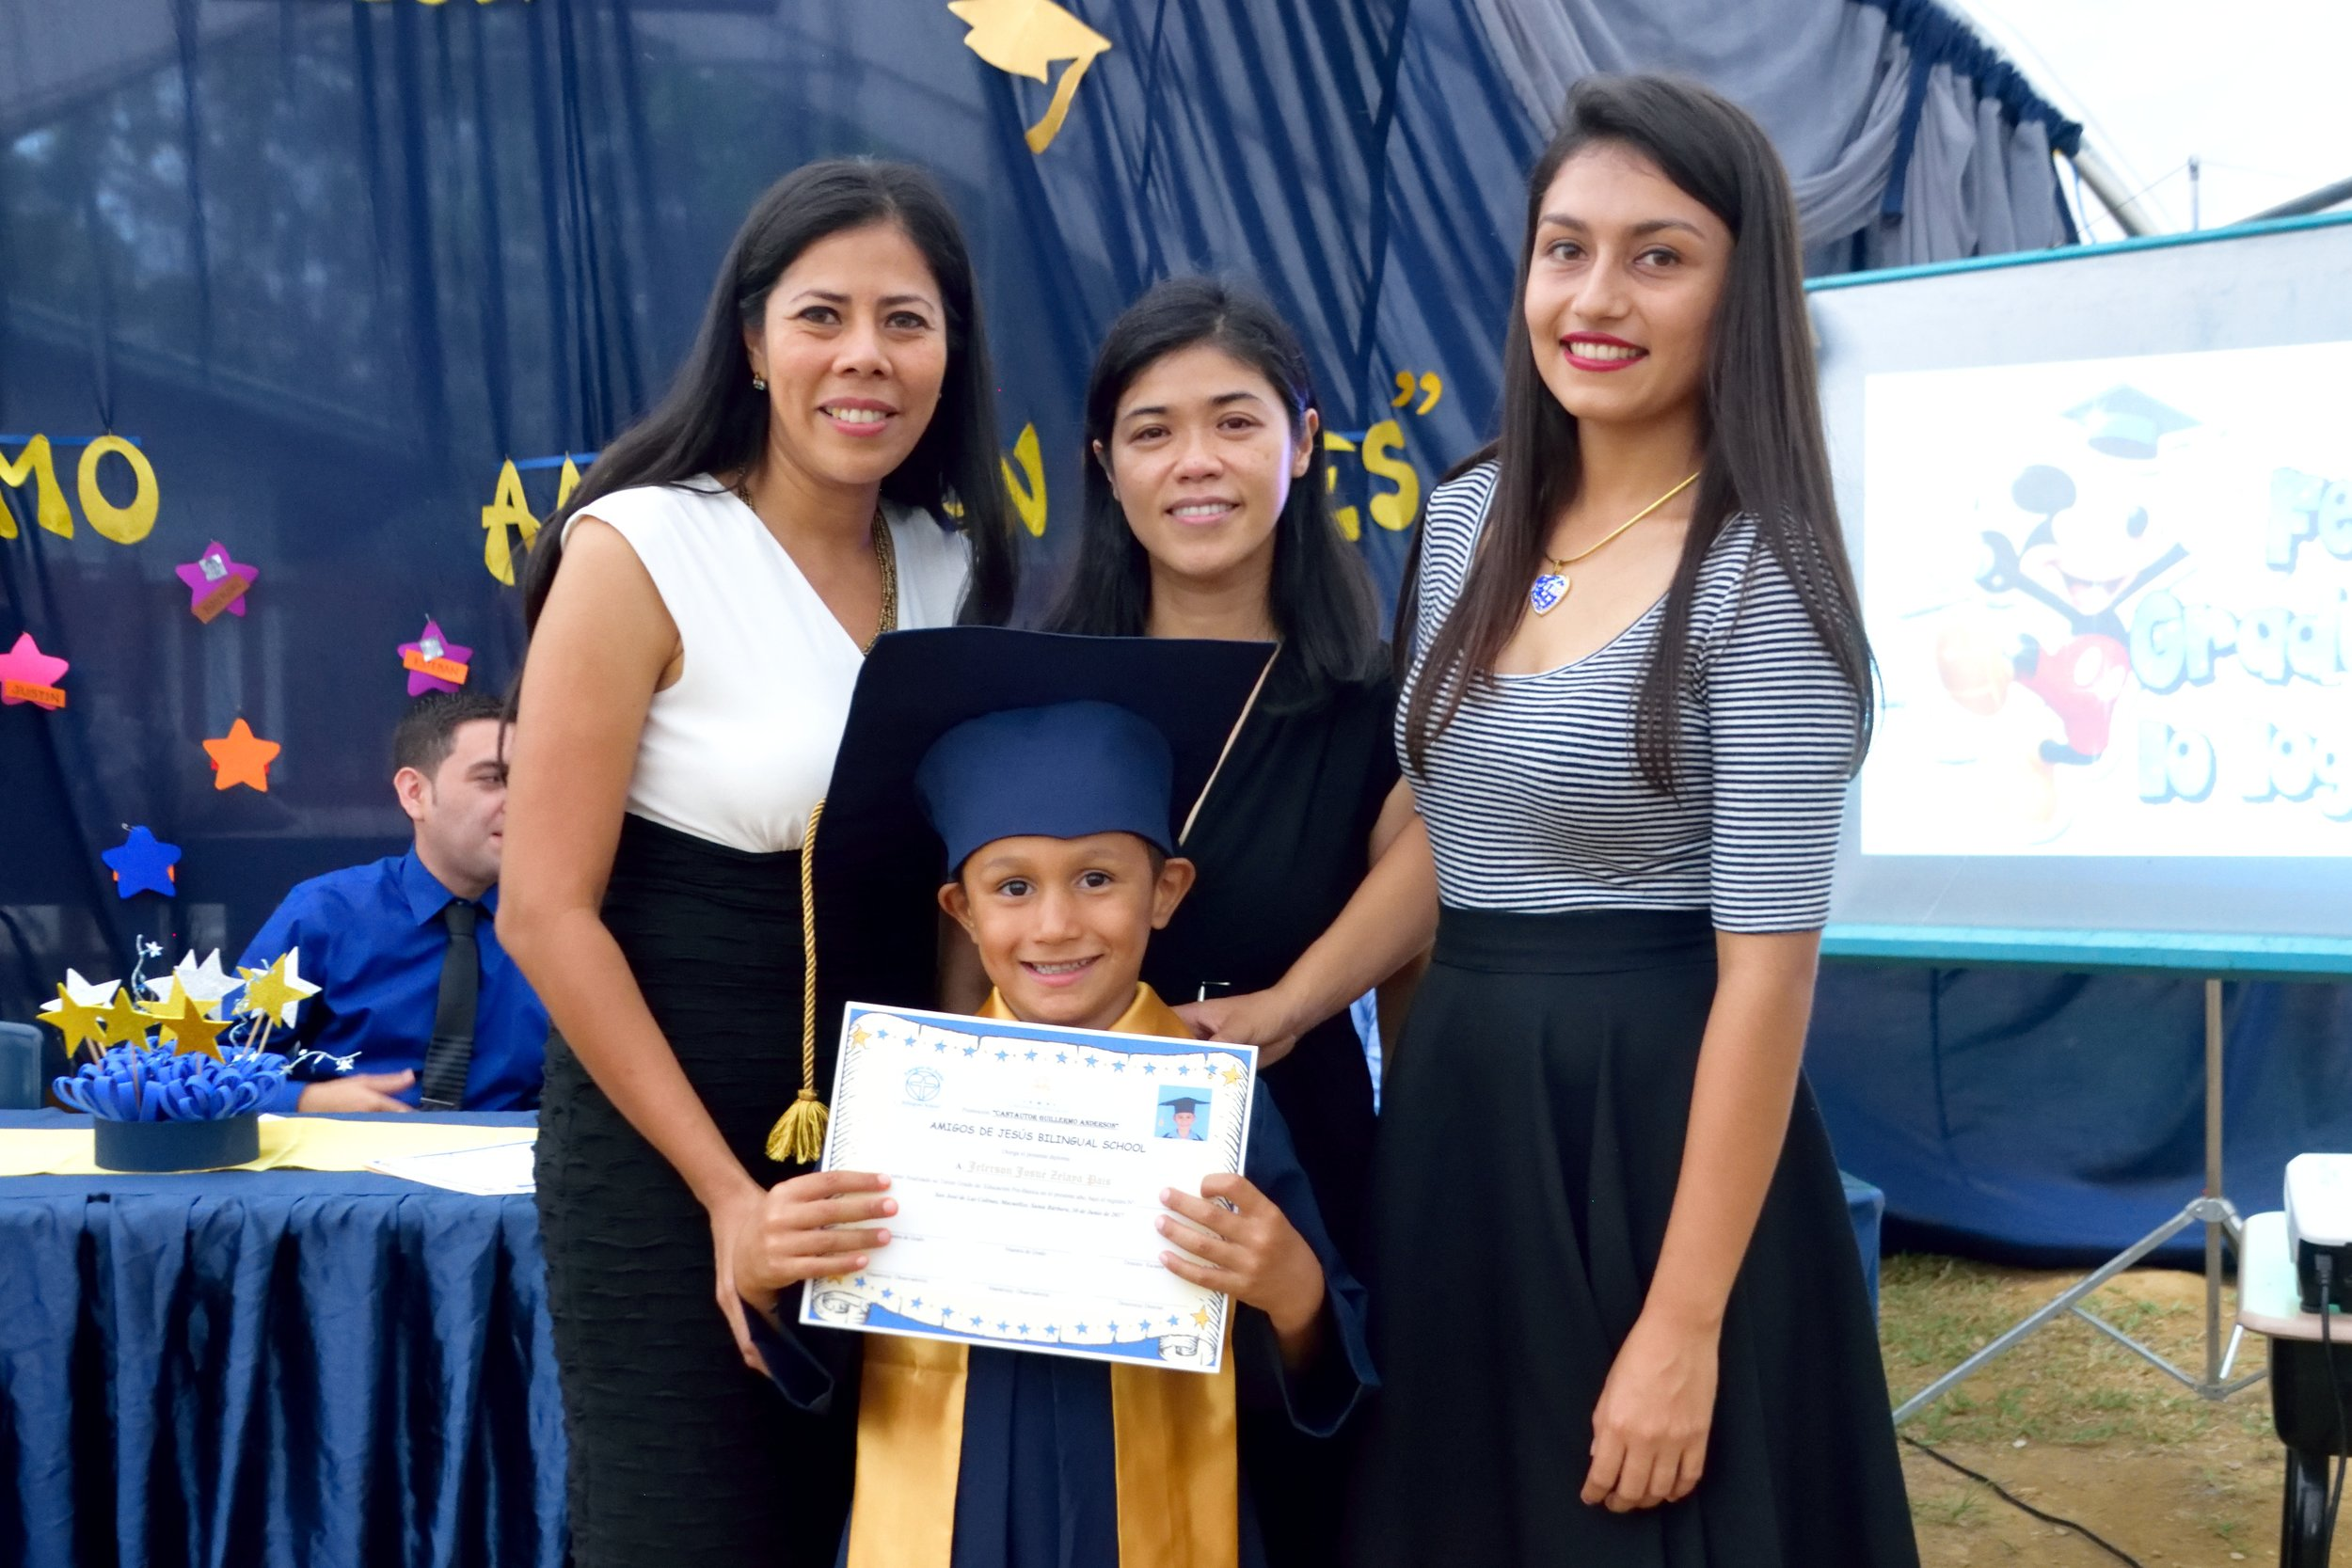 Last June, Joaquin graduated from 'Prepa' (Kindergarten). Here he is with his diploma surrounded by his three teachers.